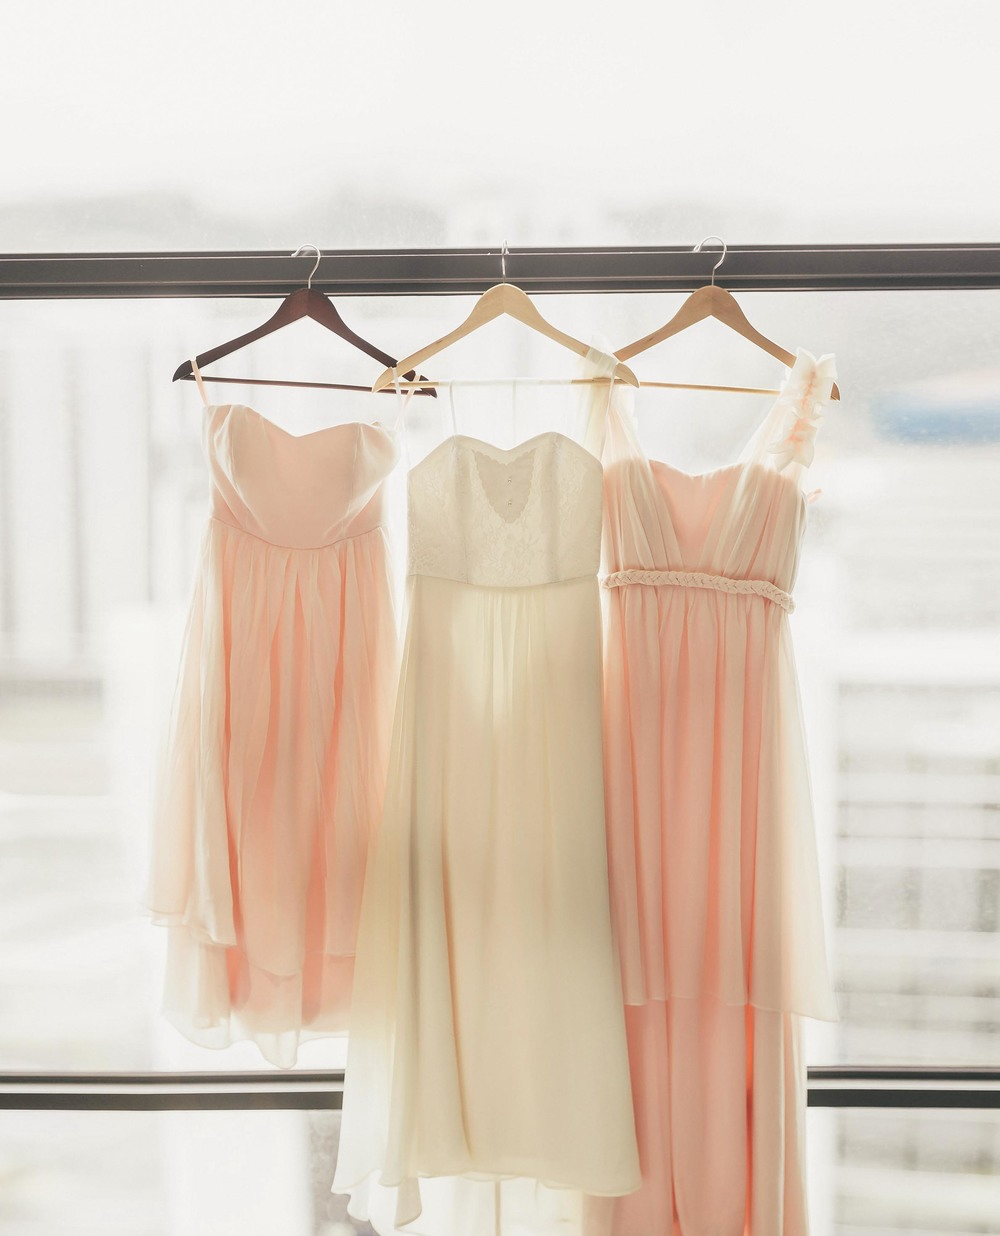 Saturday the 12th of April, 2014. 9:20am. These dresses are absolutely beautiful. Christine, your choice is awesome..